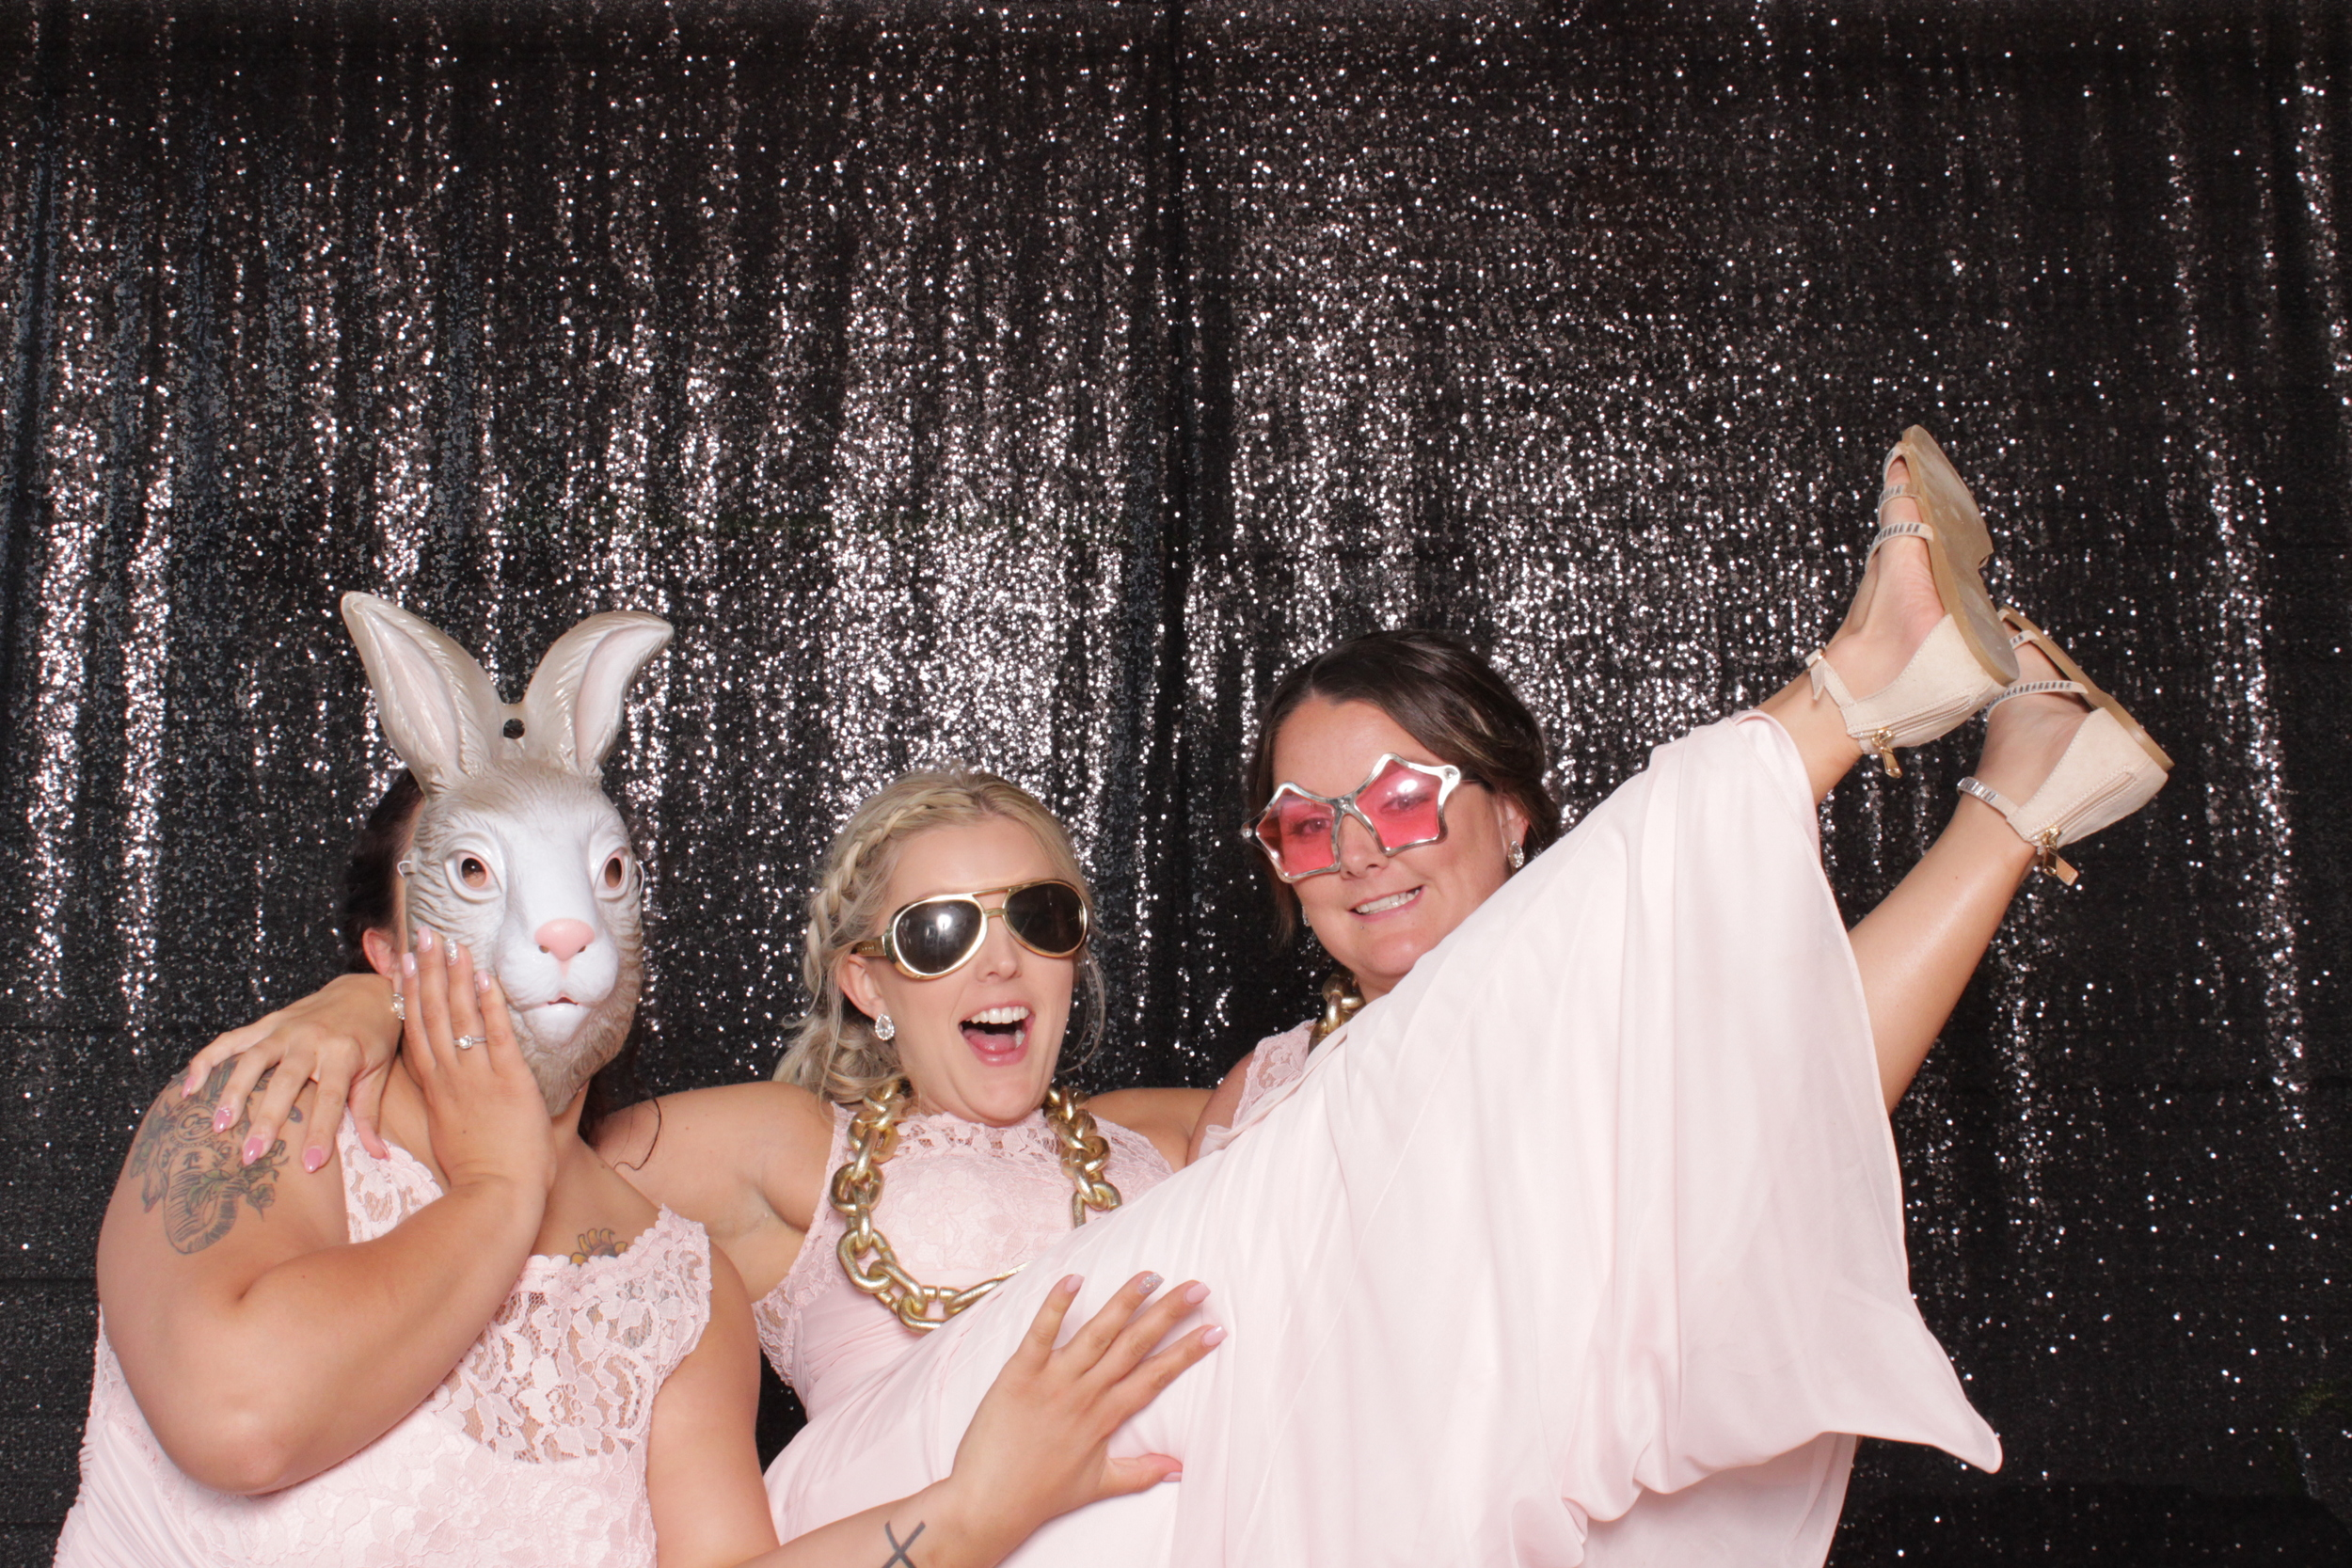 wedding-chico-open-air-photo-booth-awesome